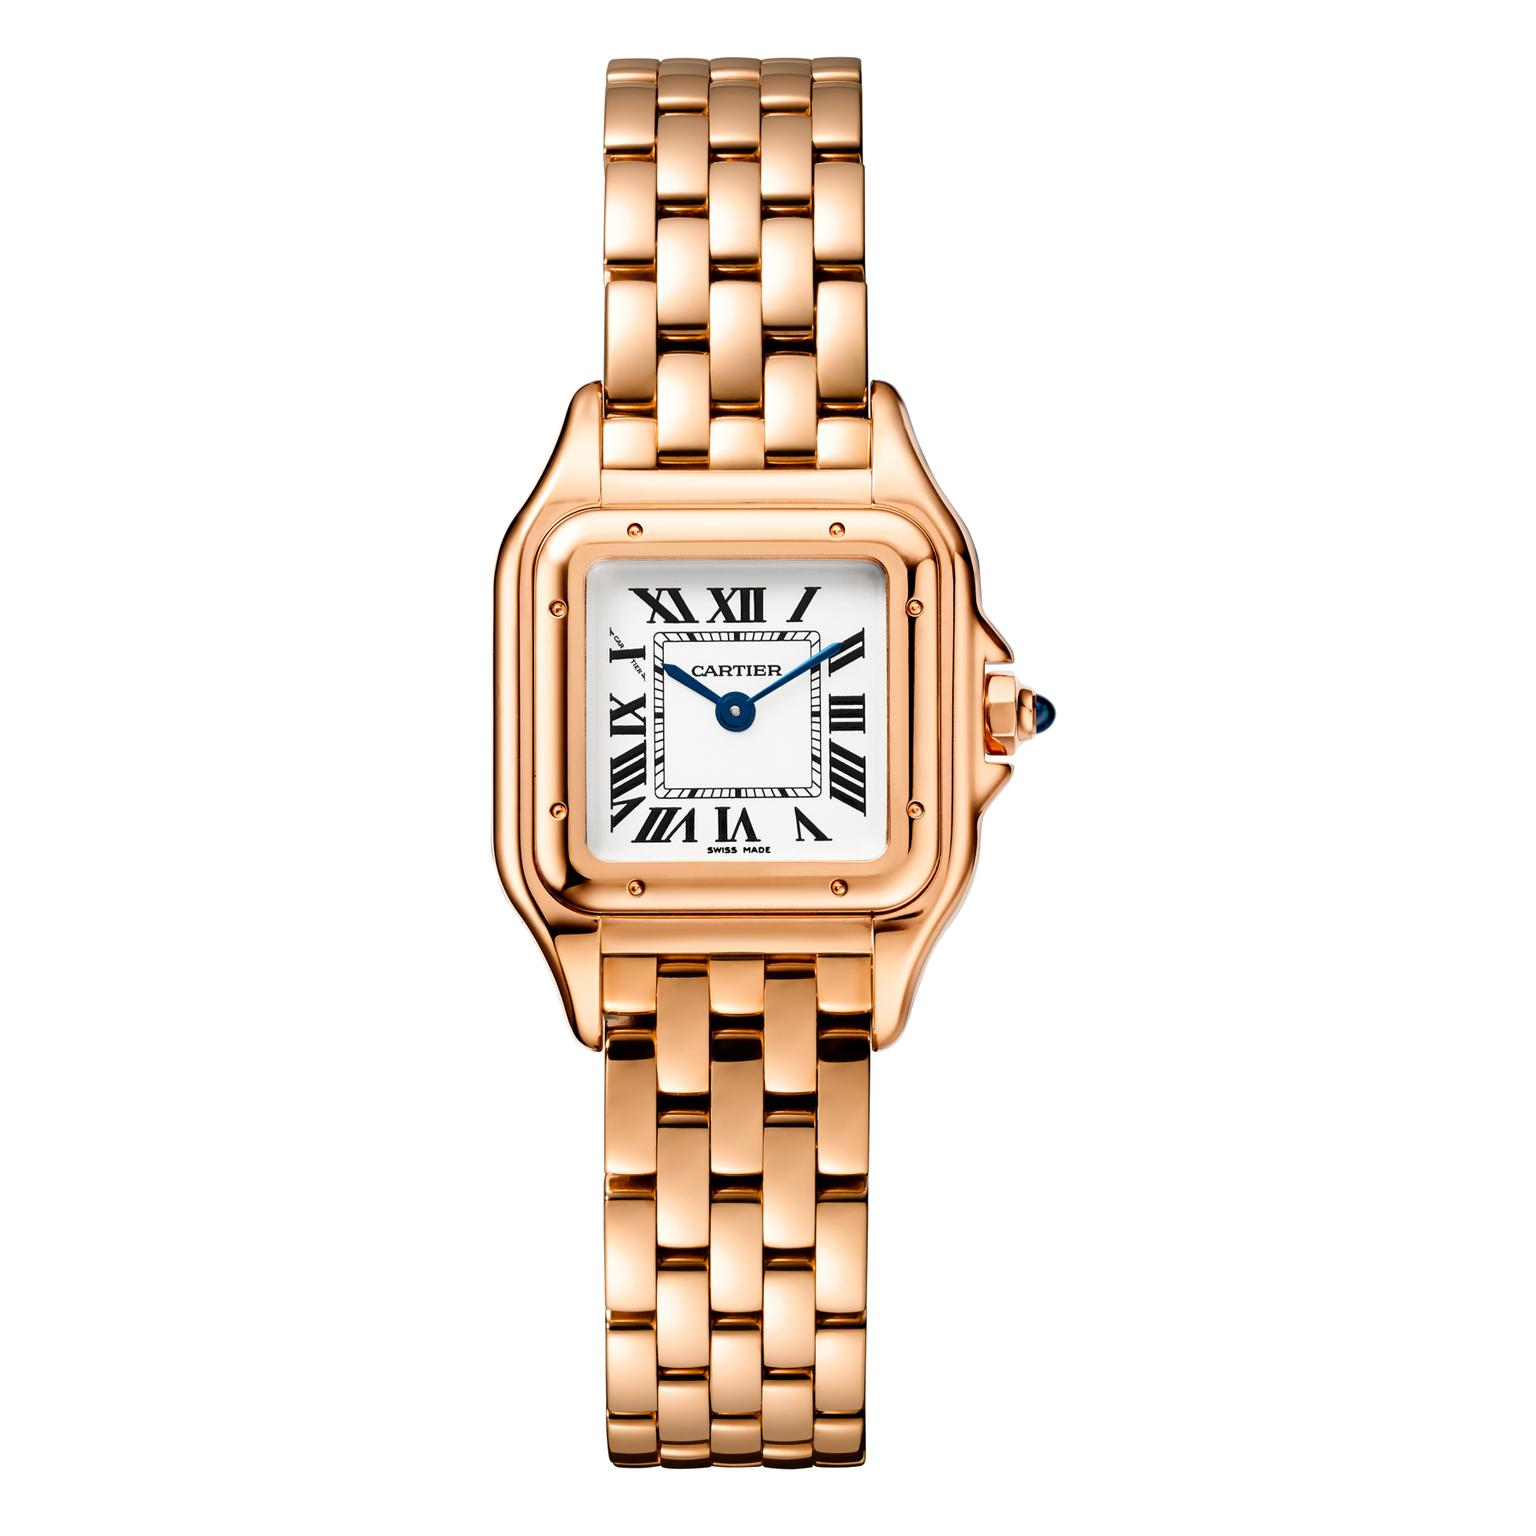 Small size Panthère de Cartier watch in rose gold